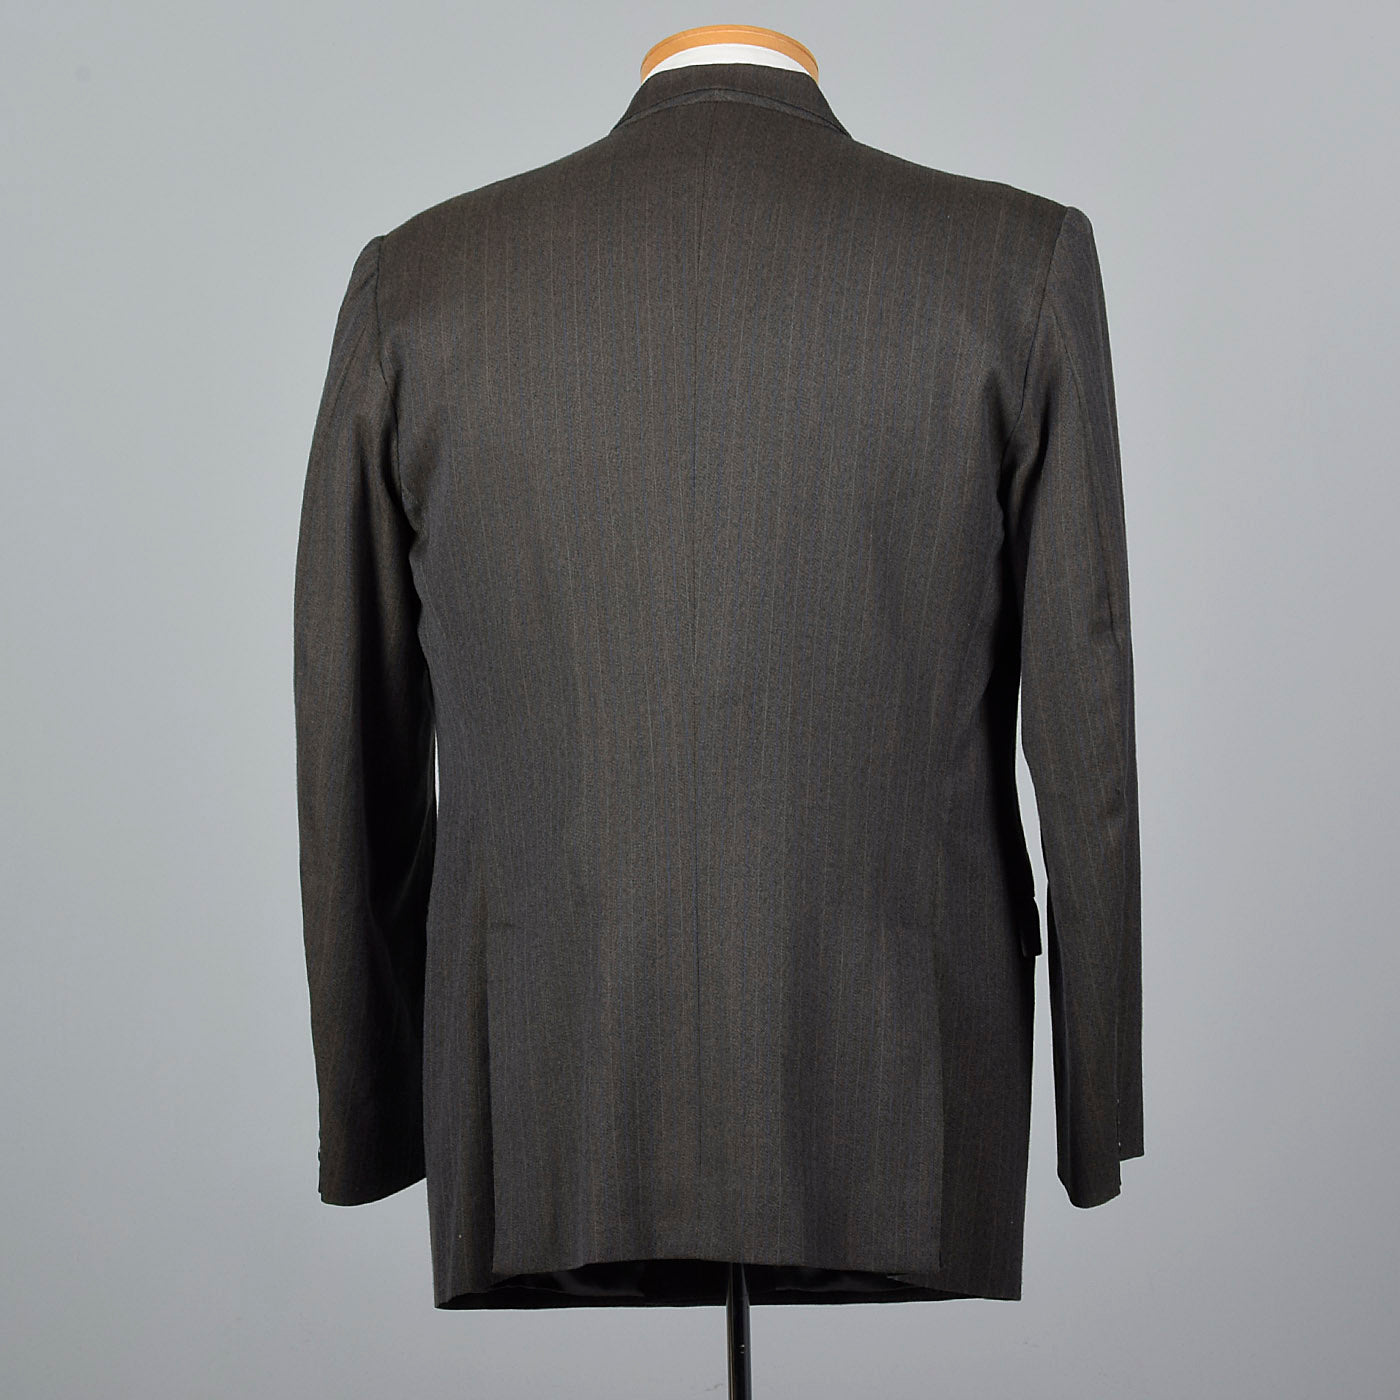 1980s Mens Double Breasted Suit Jacket